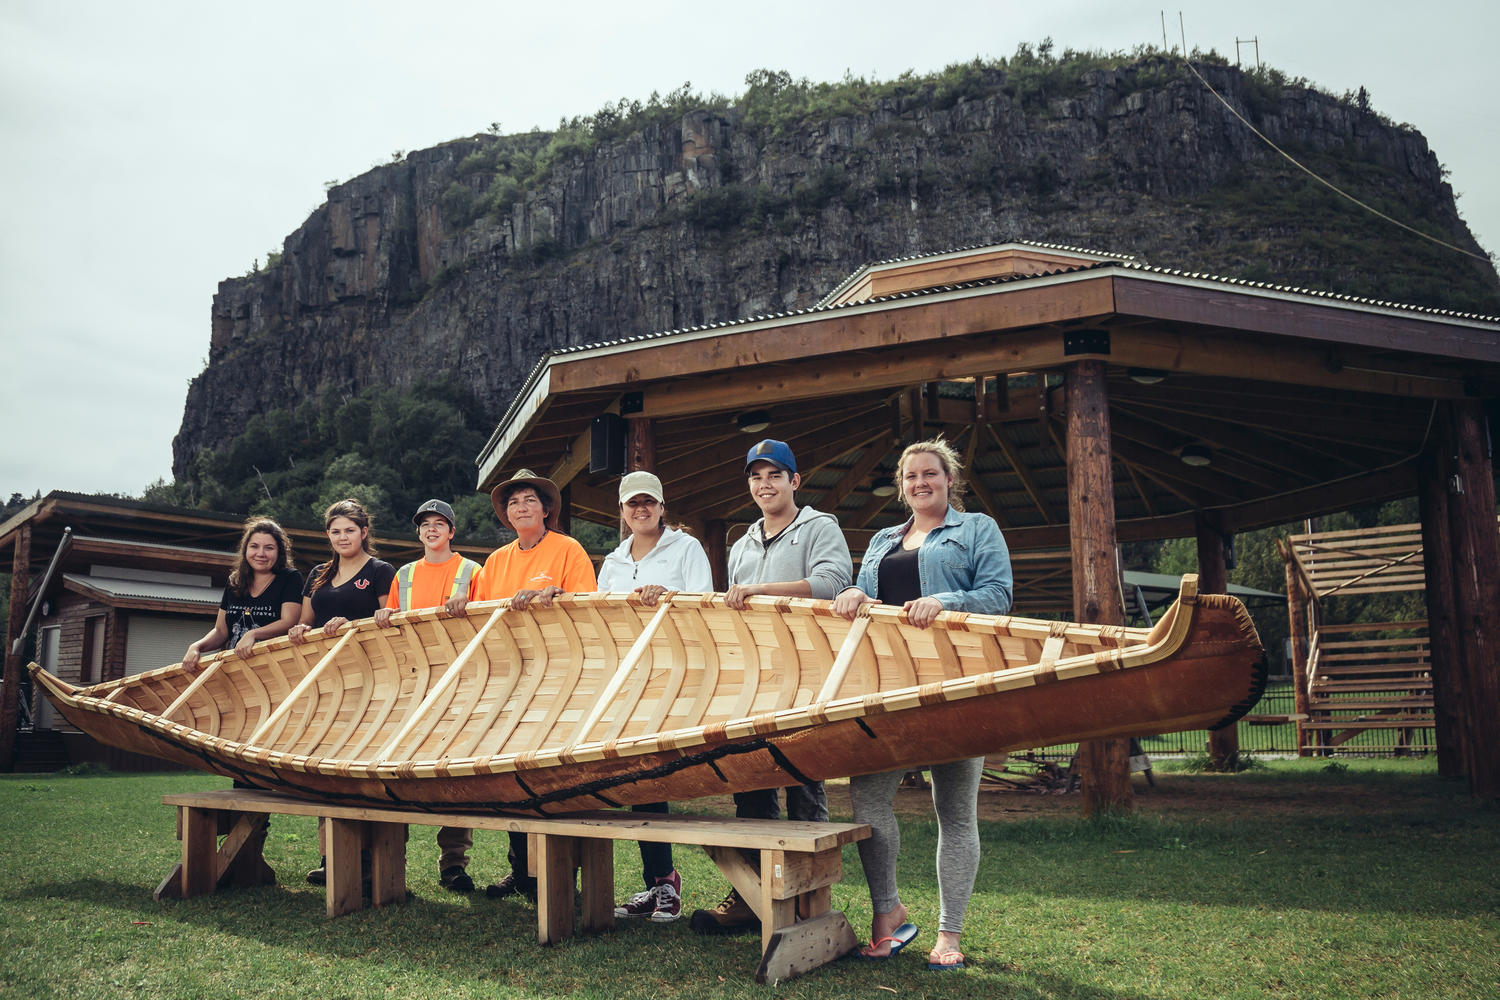 For The Past Two Years Gail Bannon Fort William First Nations Community And Recreational Coordinator Has Lead Youth Who Have Built Birchbark Canoes